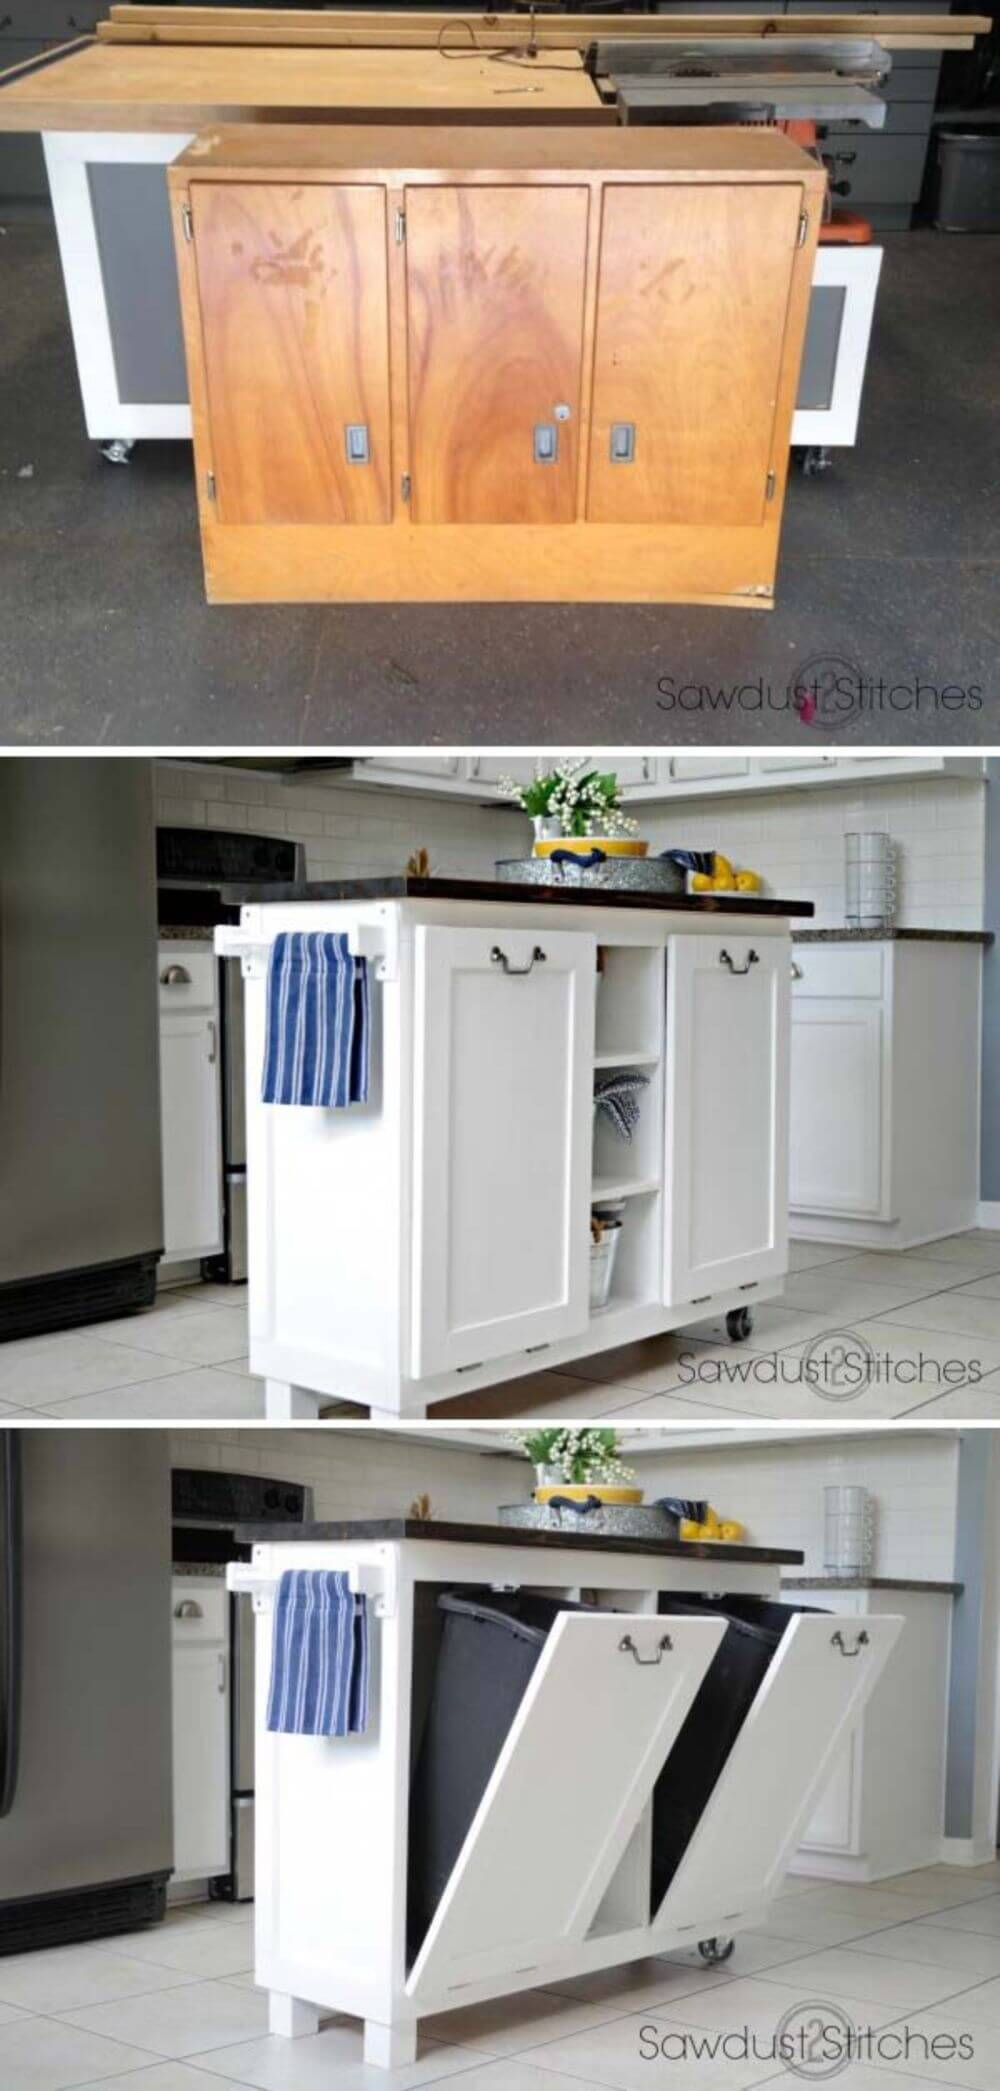 Pull-Out Drawers are Super Space Savers